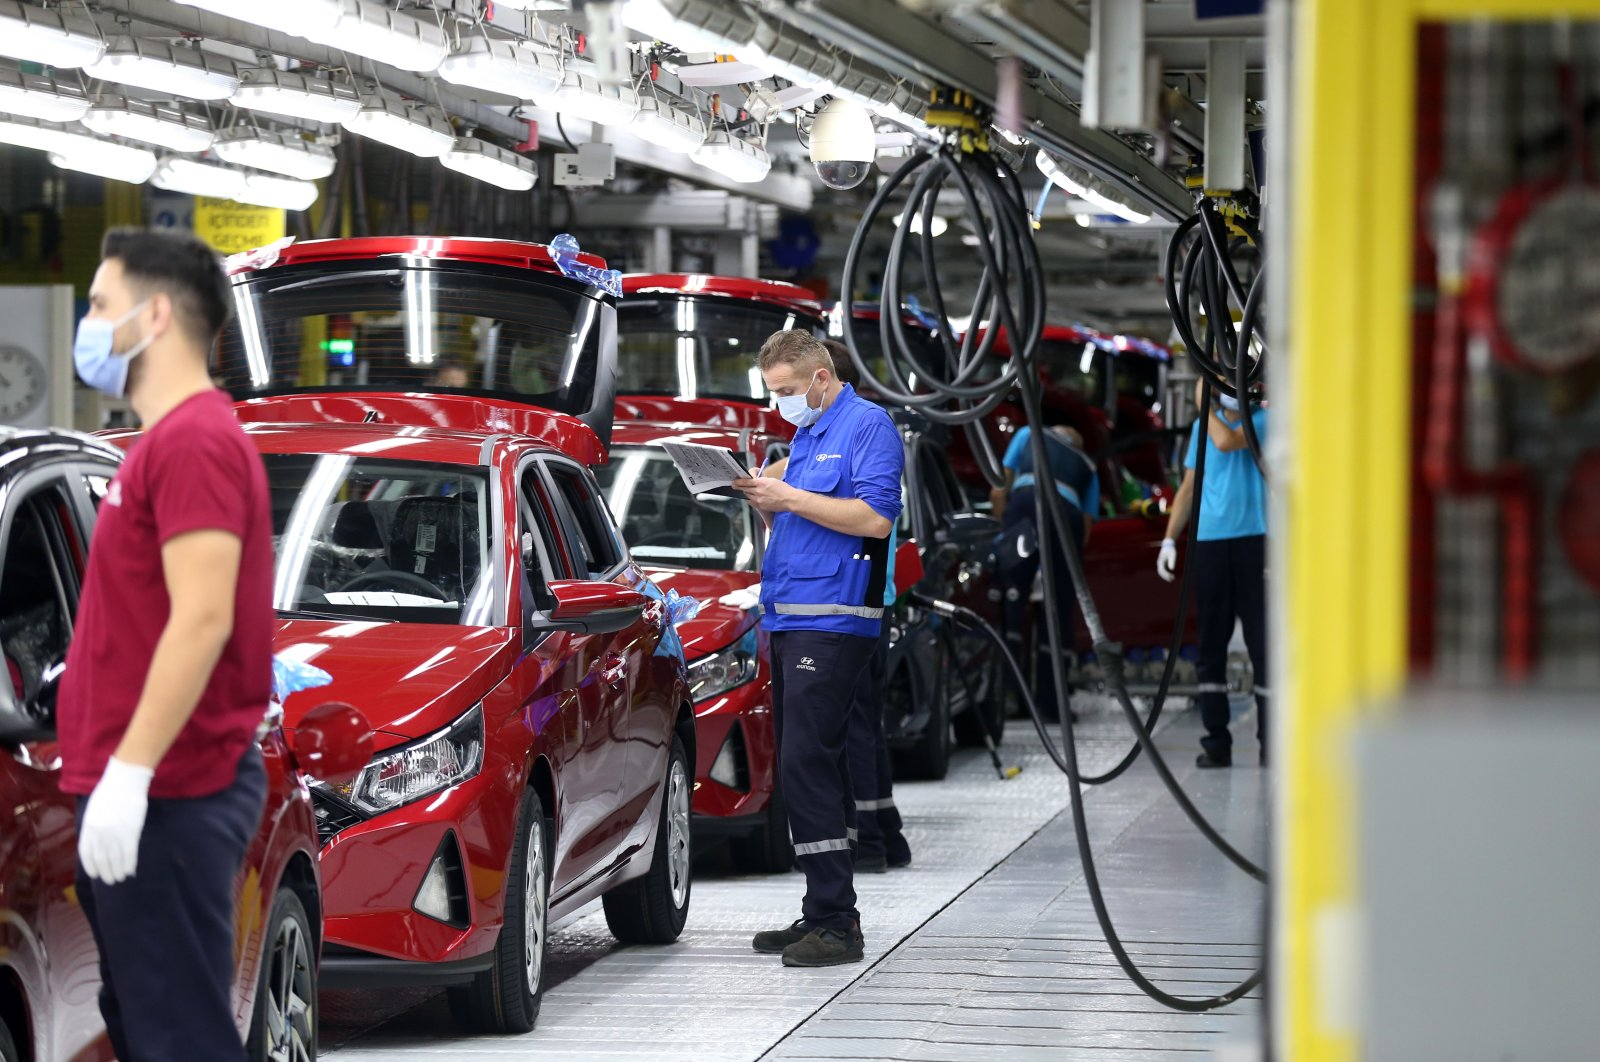 Workers are seen beside new i20 model cars at Hyundai Assan's Izmit factory in northwestern Kocaeli, Turkey, Aug. 28, 2020.